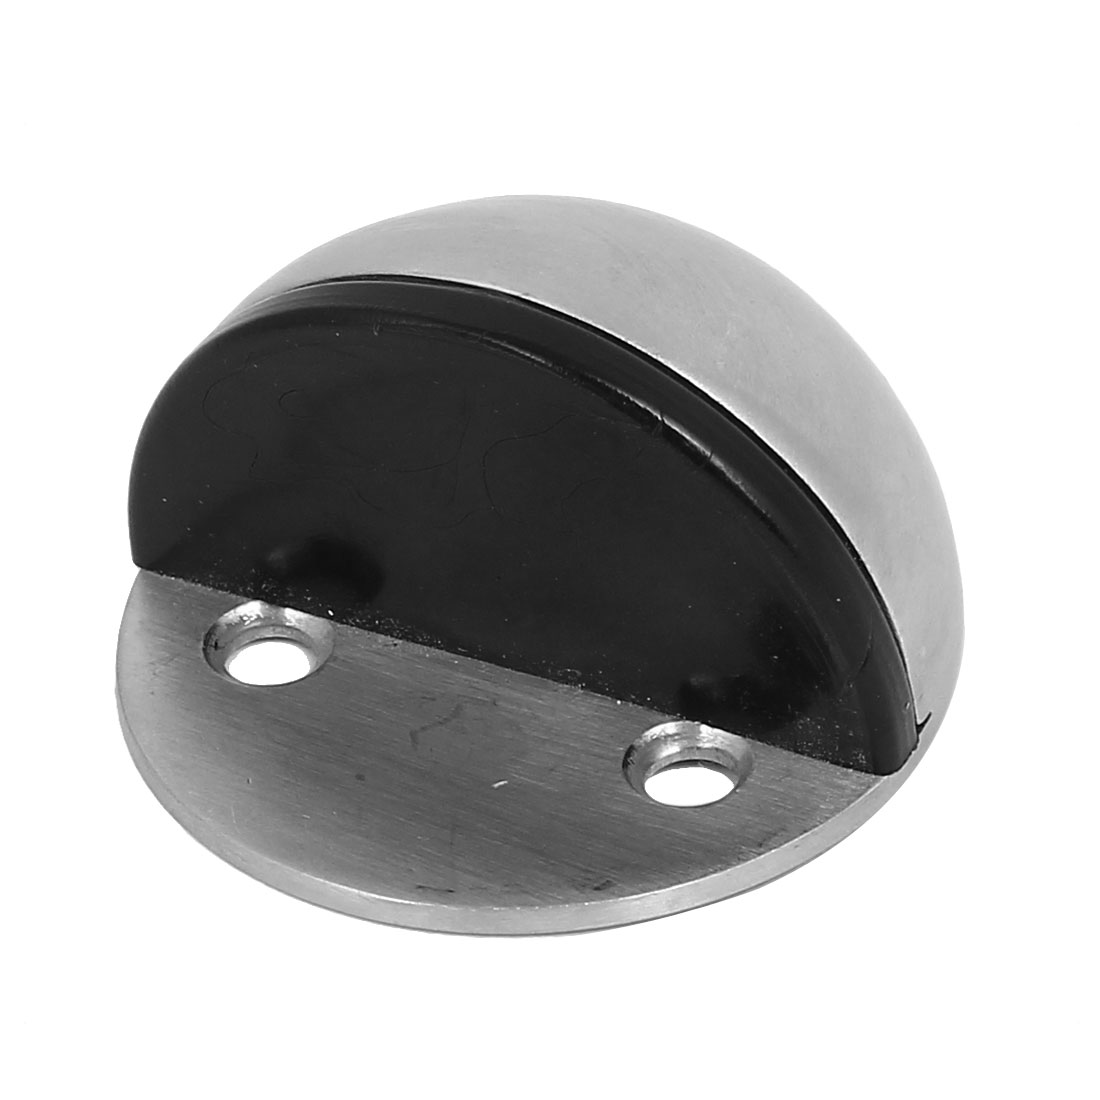 Home Office Door Round Shaped Stop Stopper Buffer Protector 45x25mm